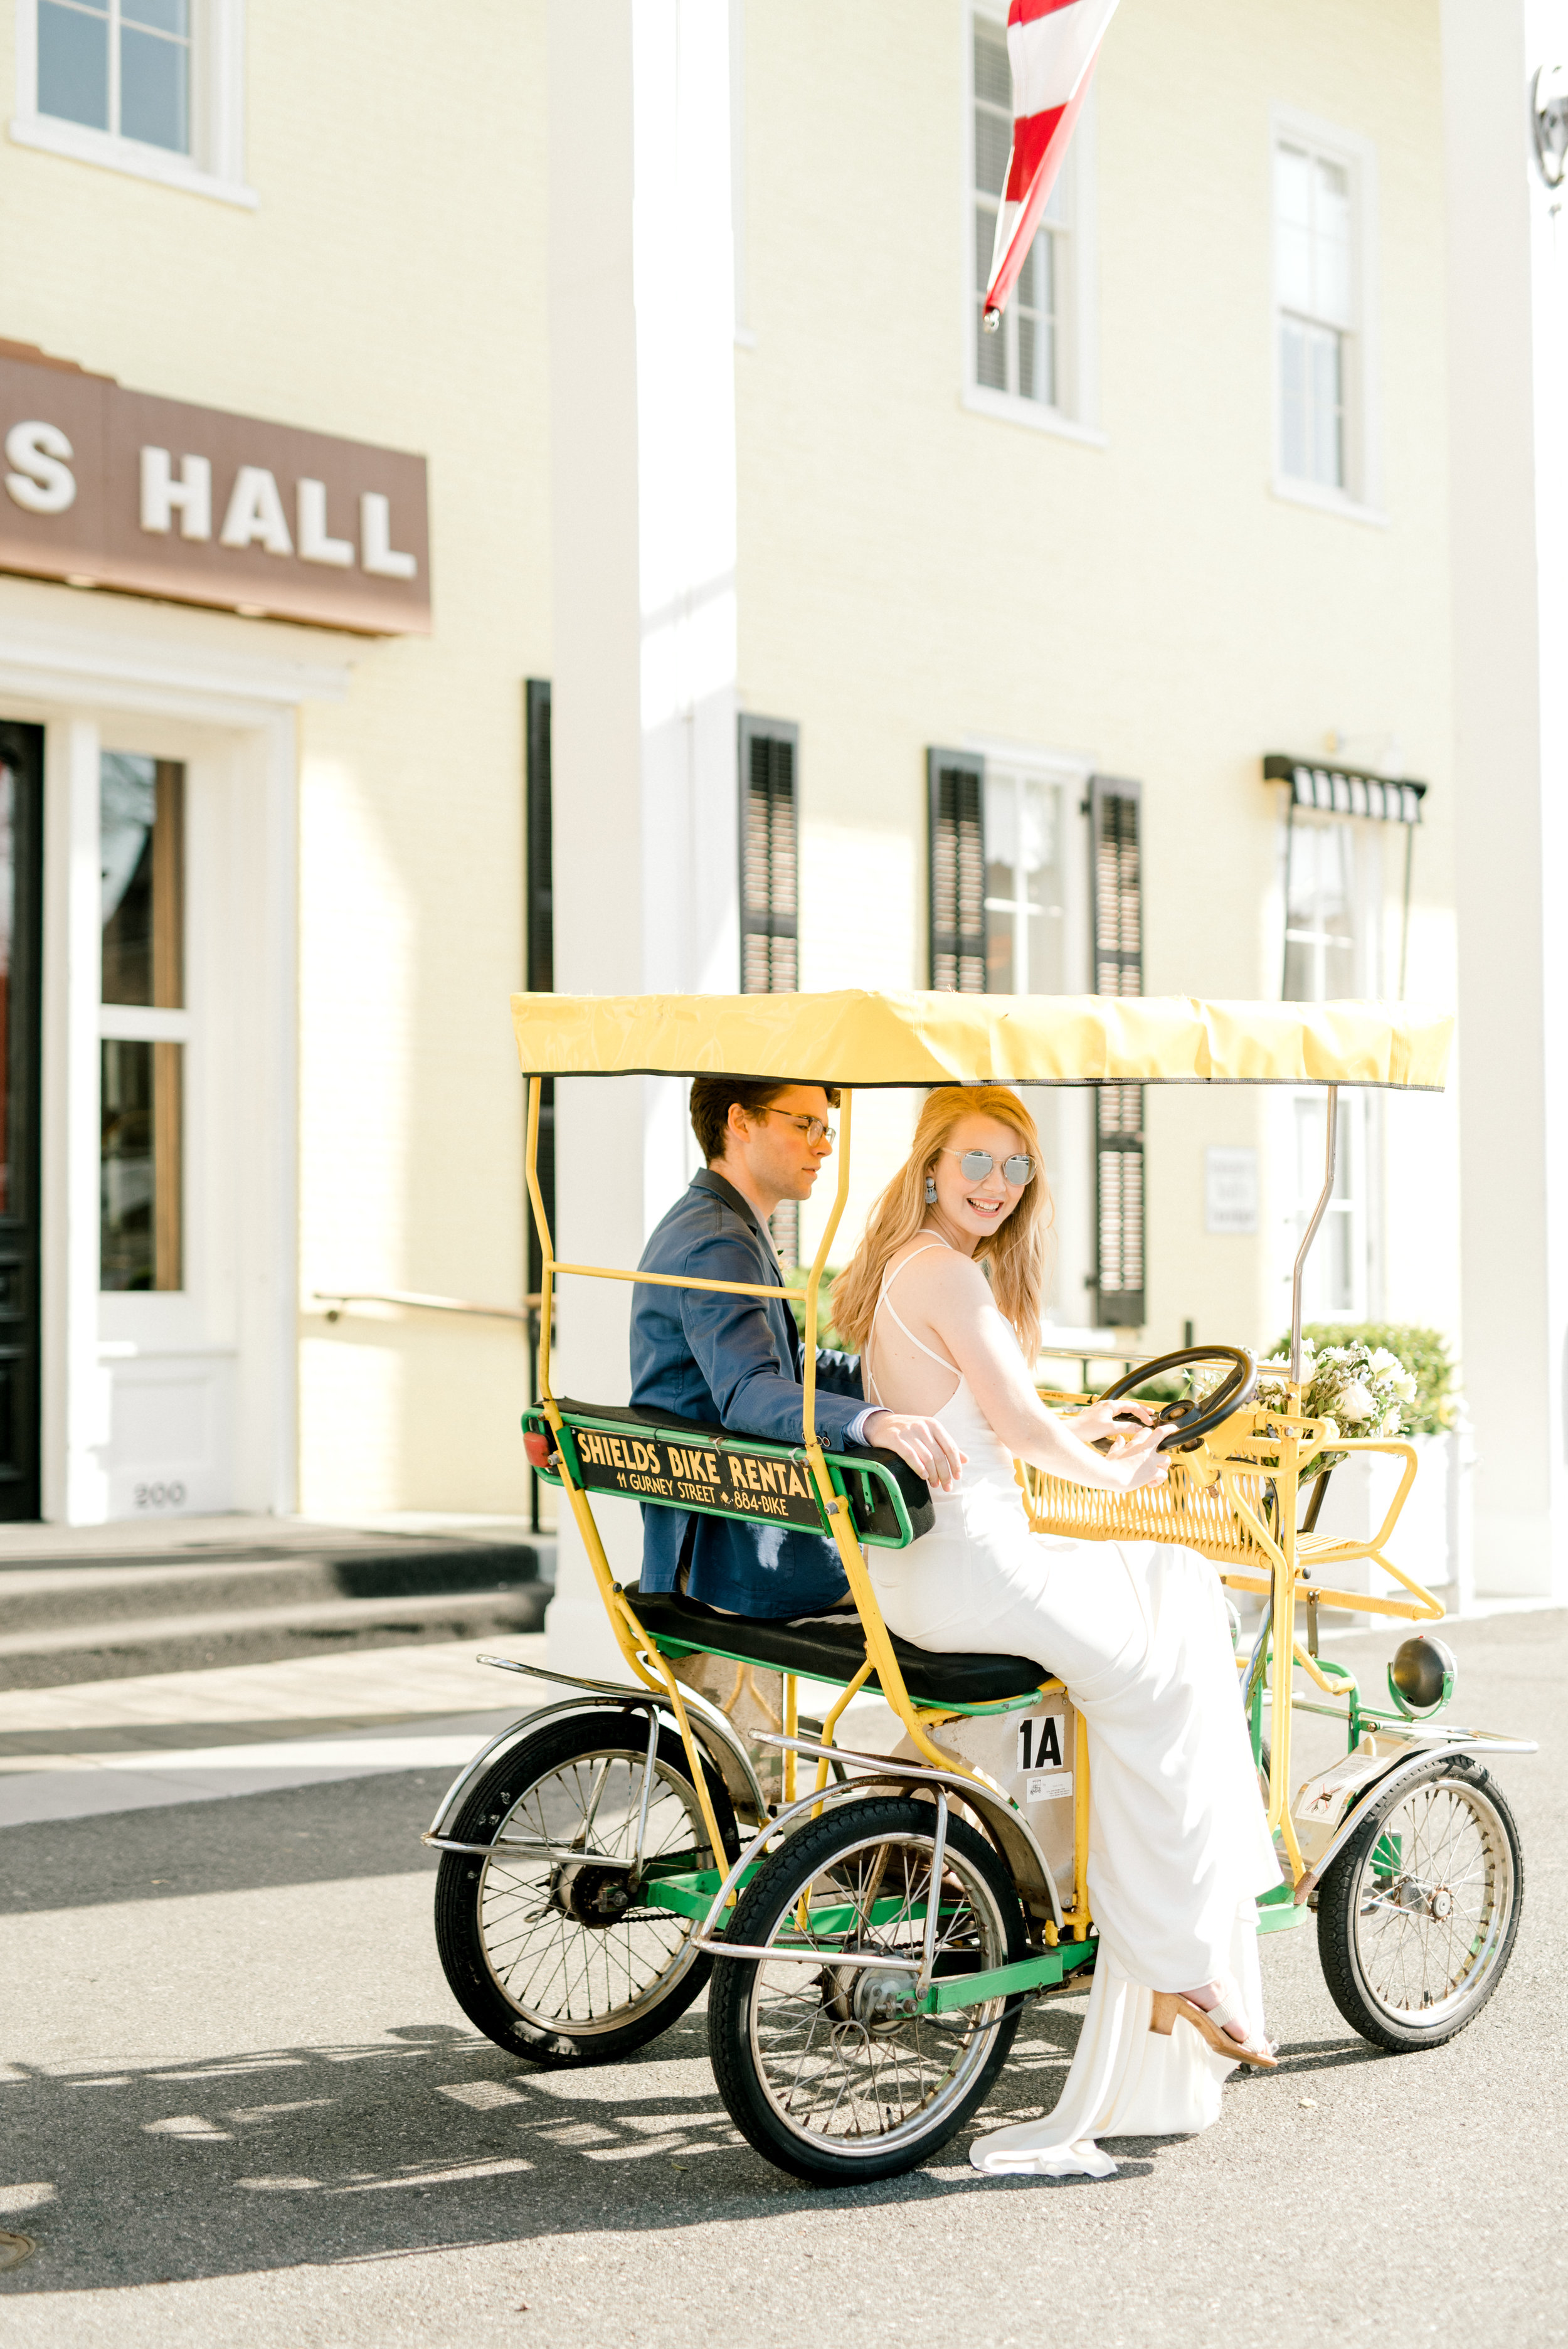 haley-richter-photography-clover-event-co-cape-may-new-jersey-wedding-elopement-at-congress-hall-sea-glass-inspired-045.jpg